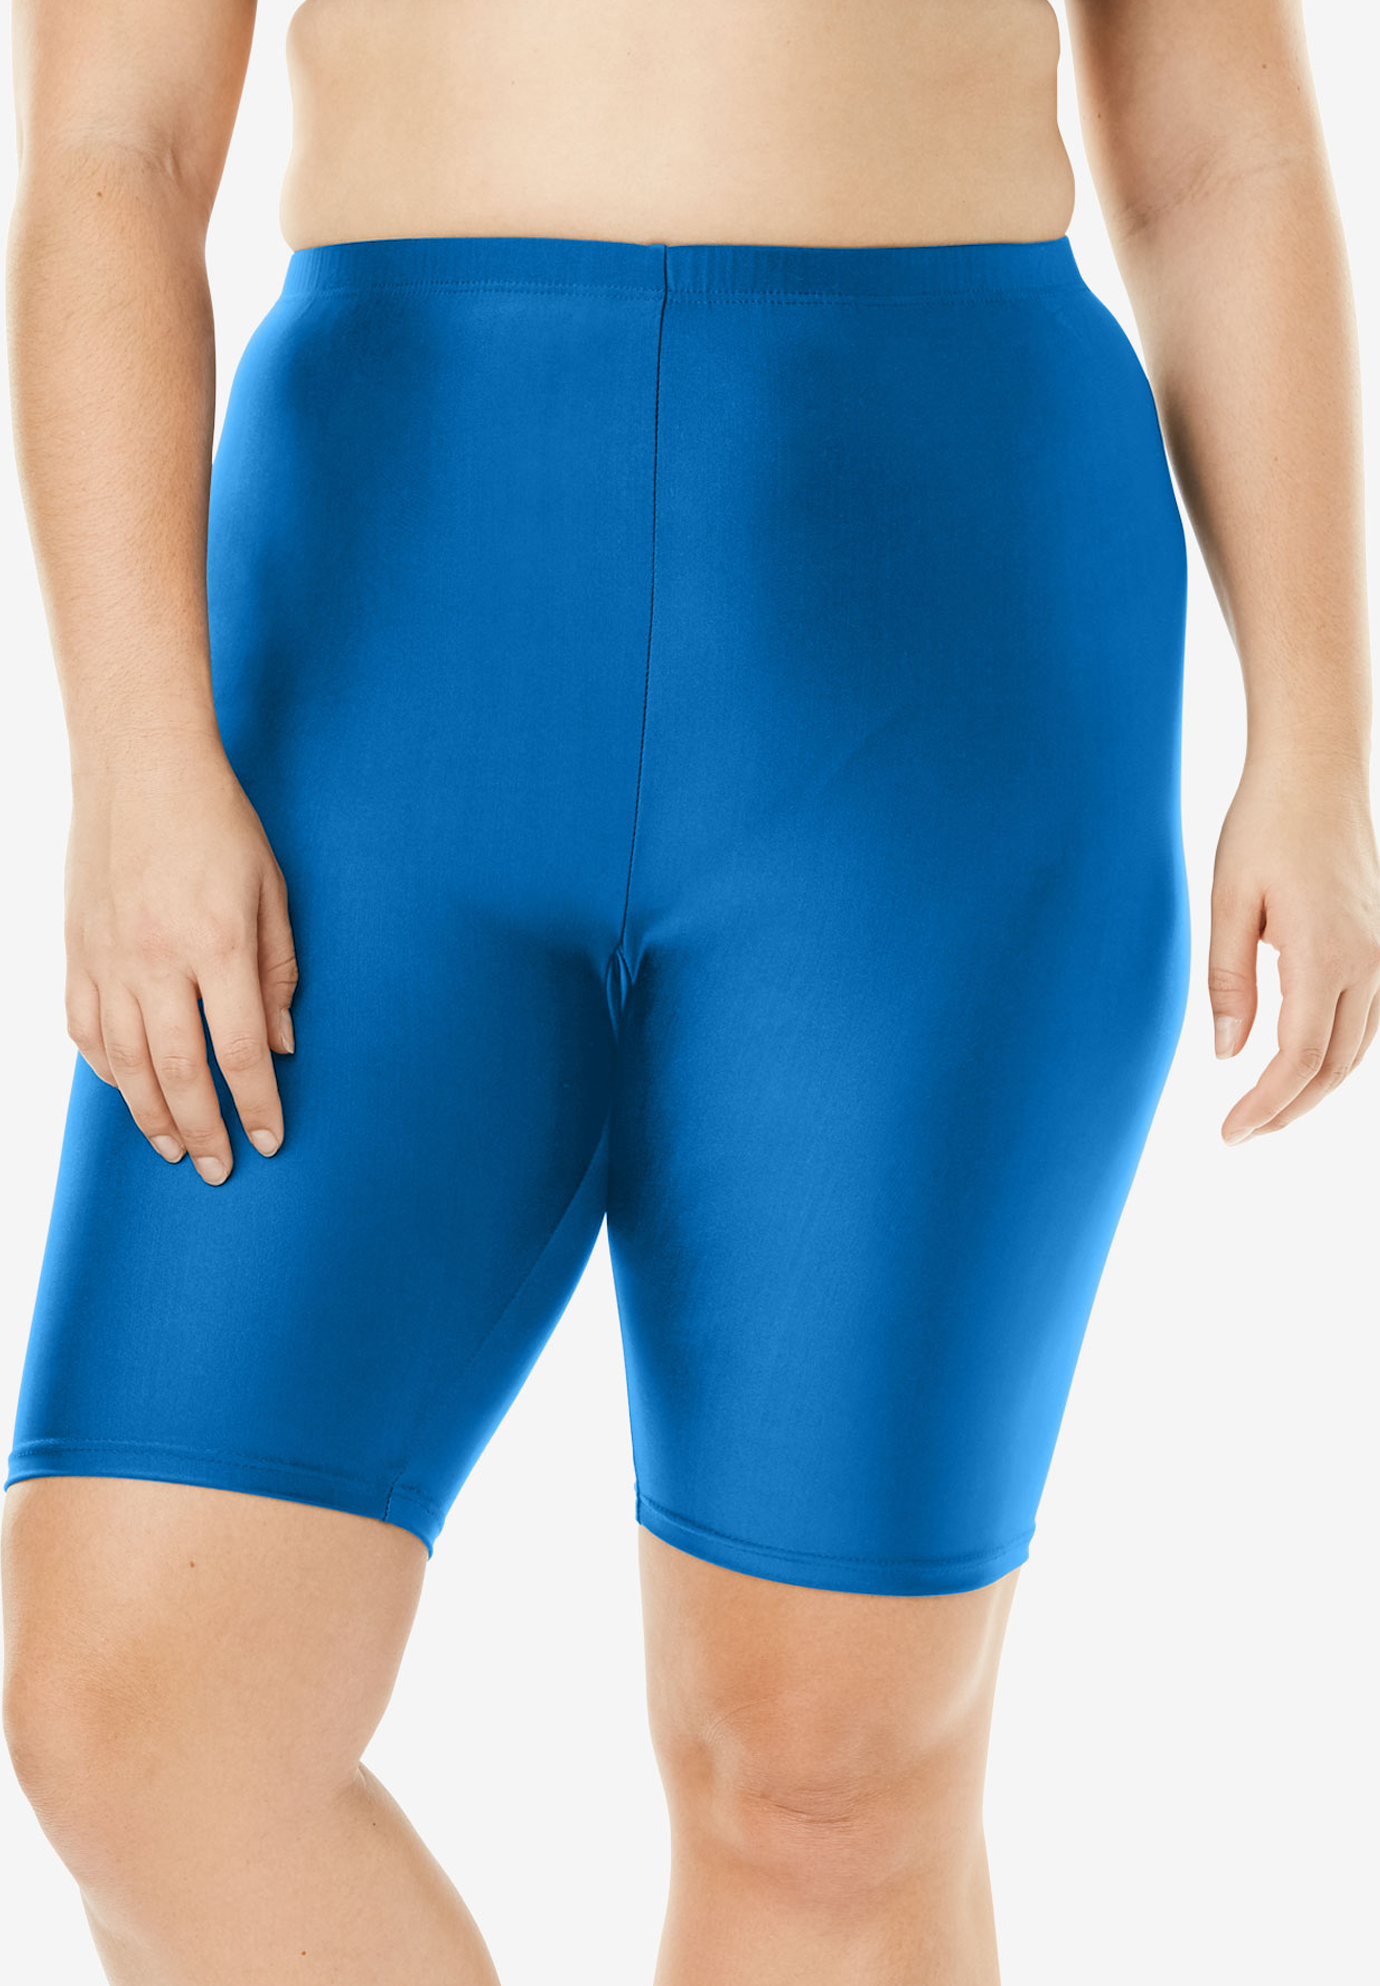 Chlorine Resistant Long Swim Bike Short,